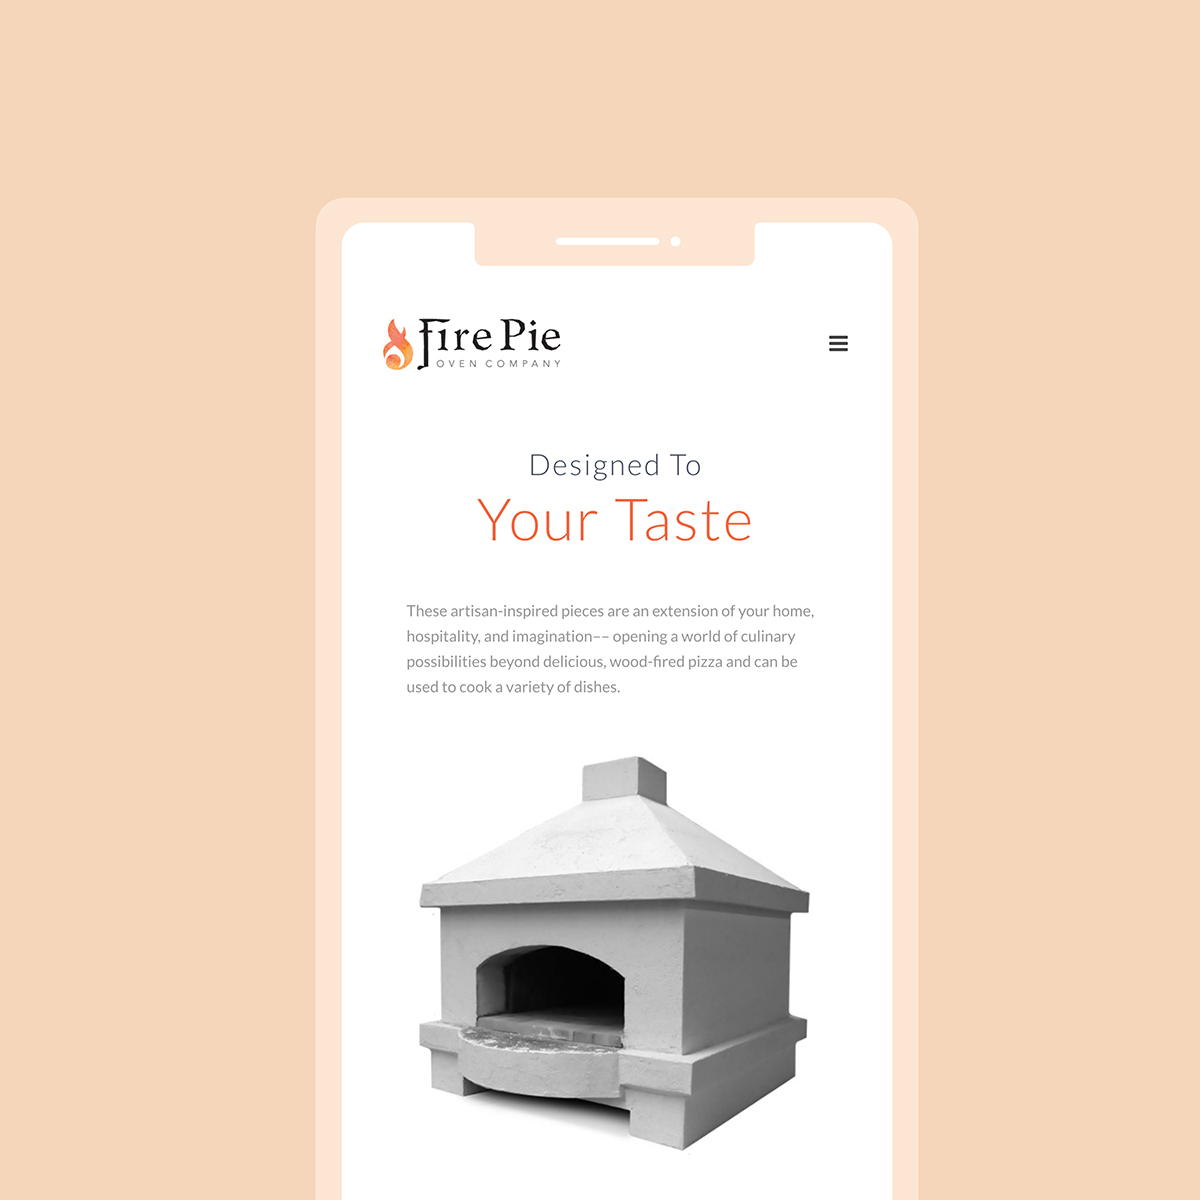 A screenshot of firepieovens.com webapge